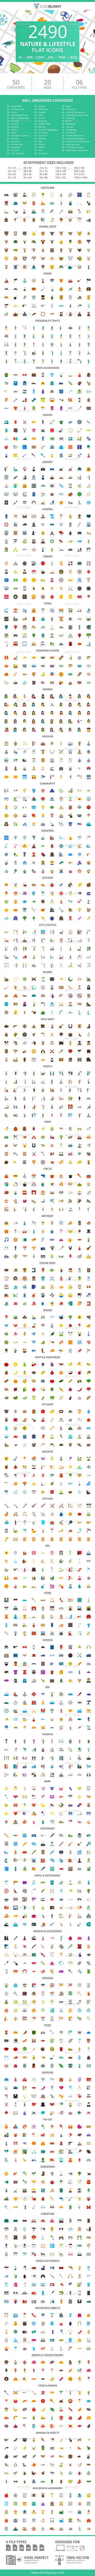 GraphicRiver 2490 Nature & Lifestyle Flat Icons 21176176